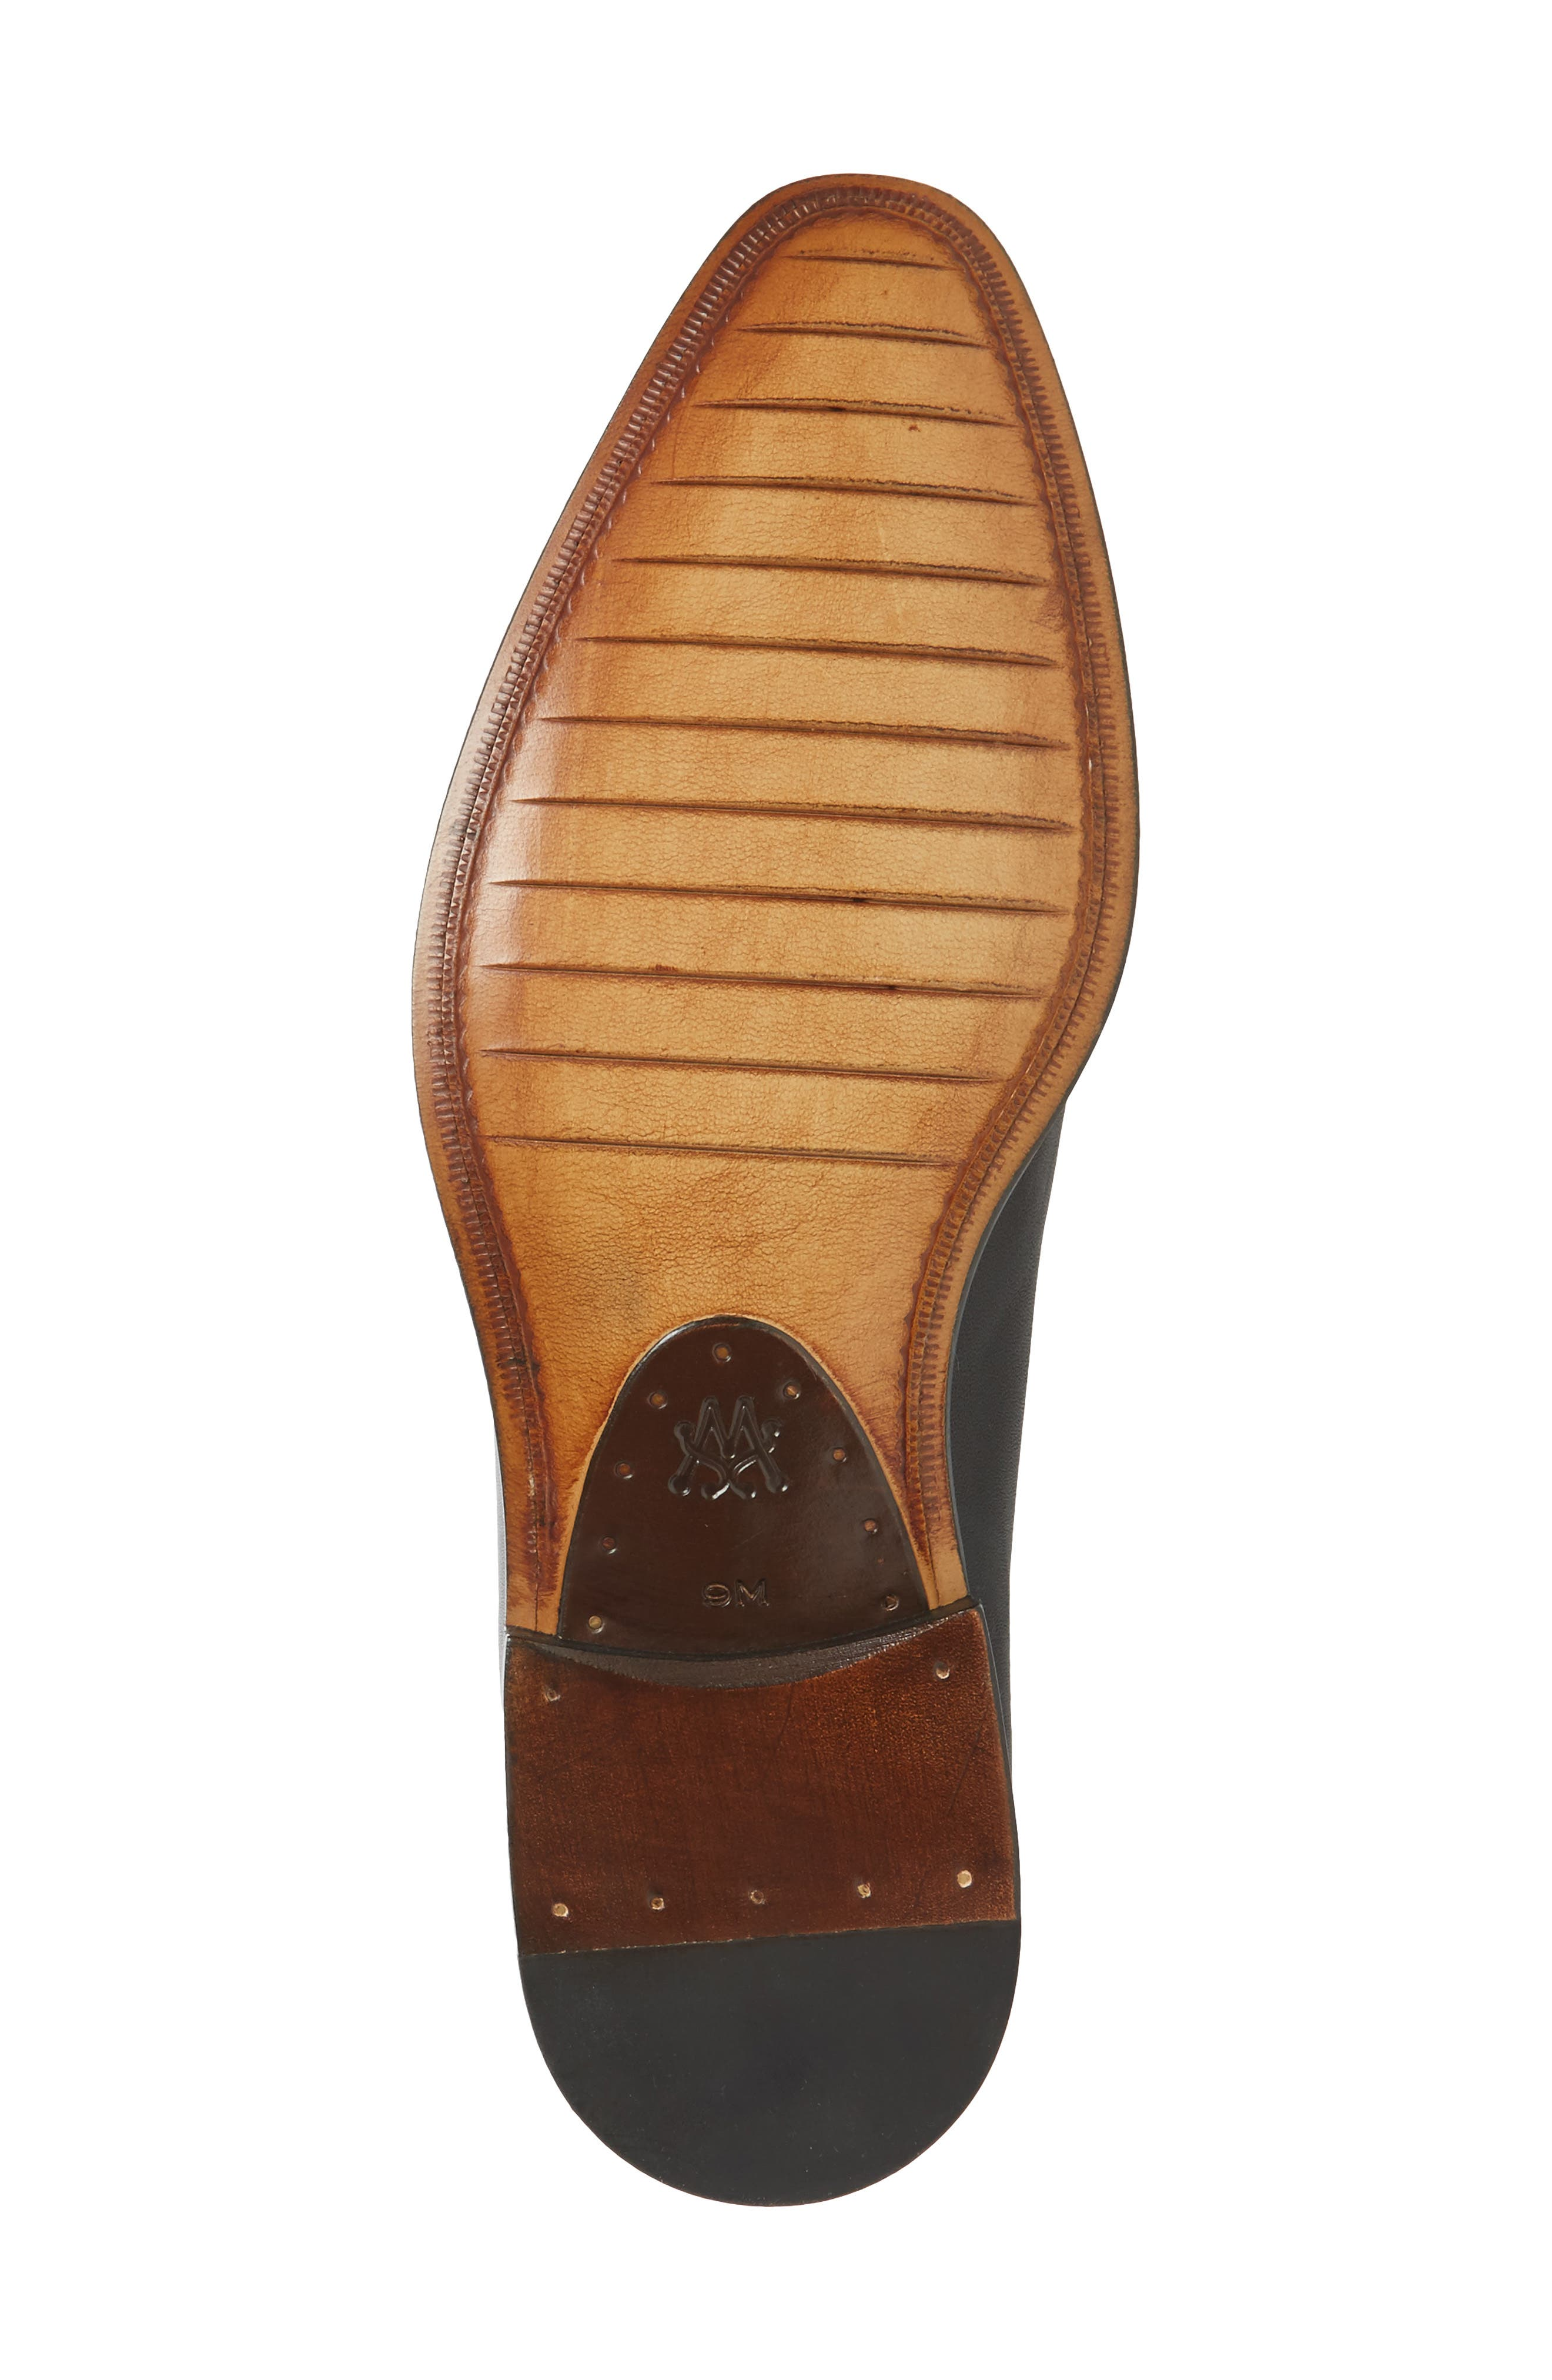 Strauss Venetian Loafer,                             Alternate thumbnail 4, color,                             Graphite Leather